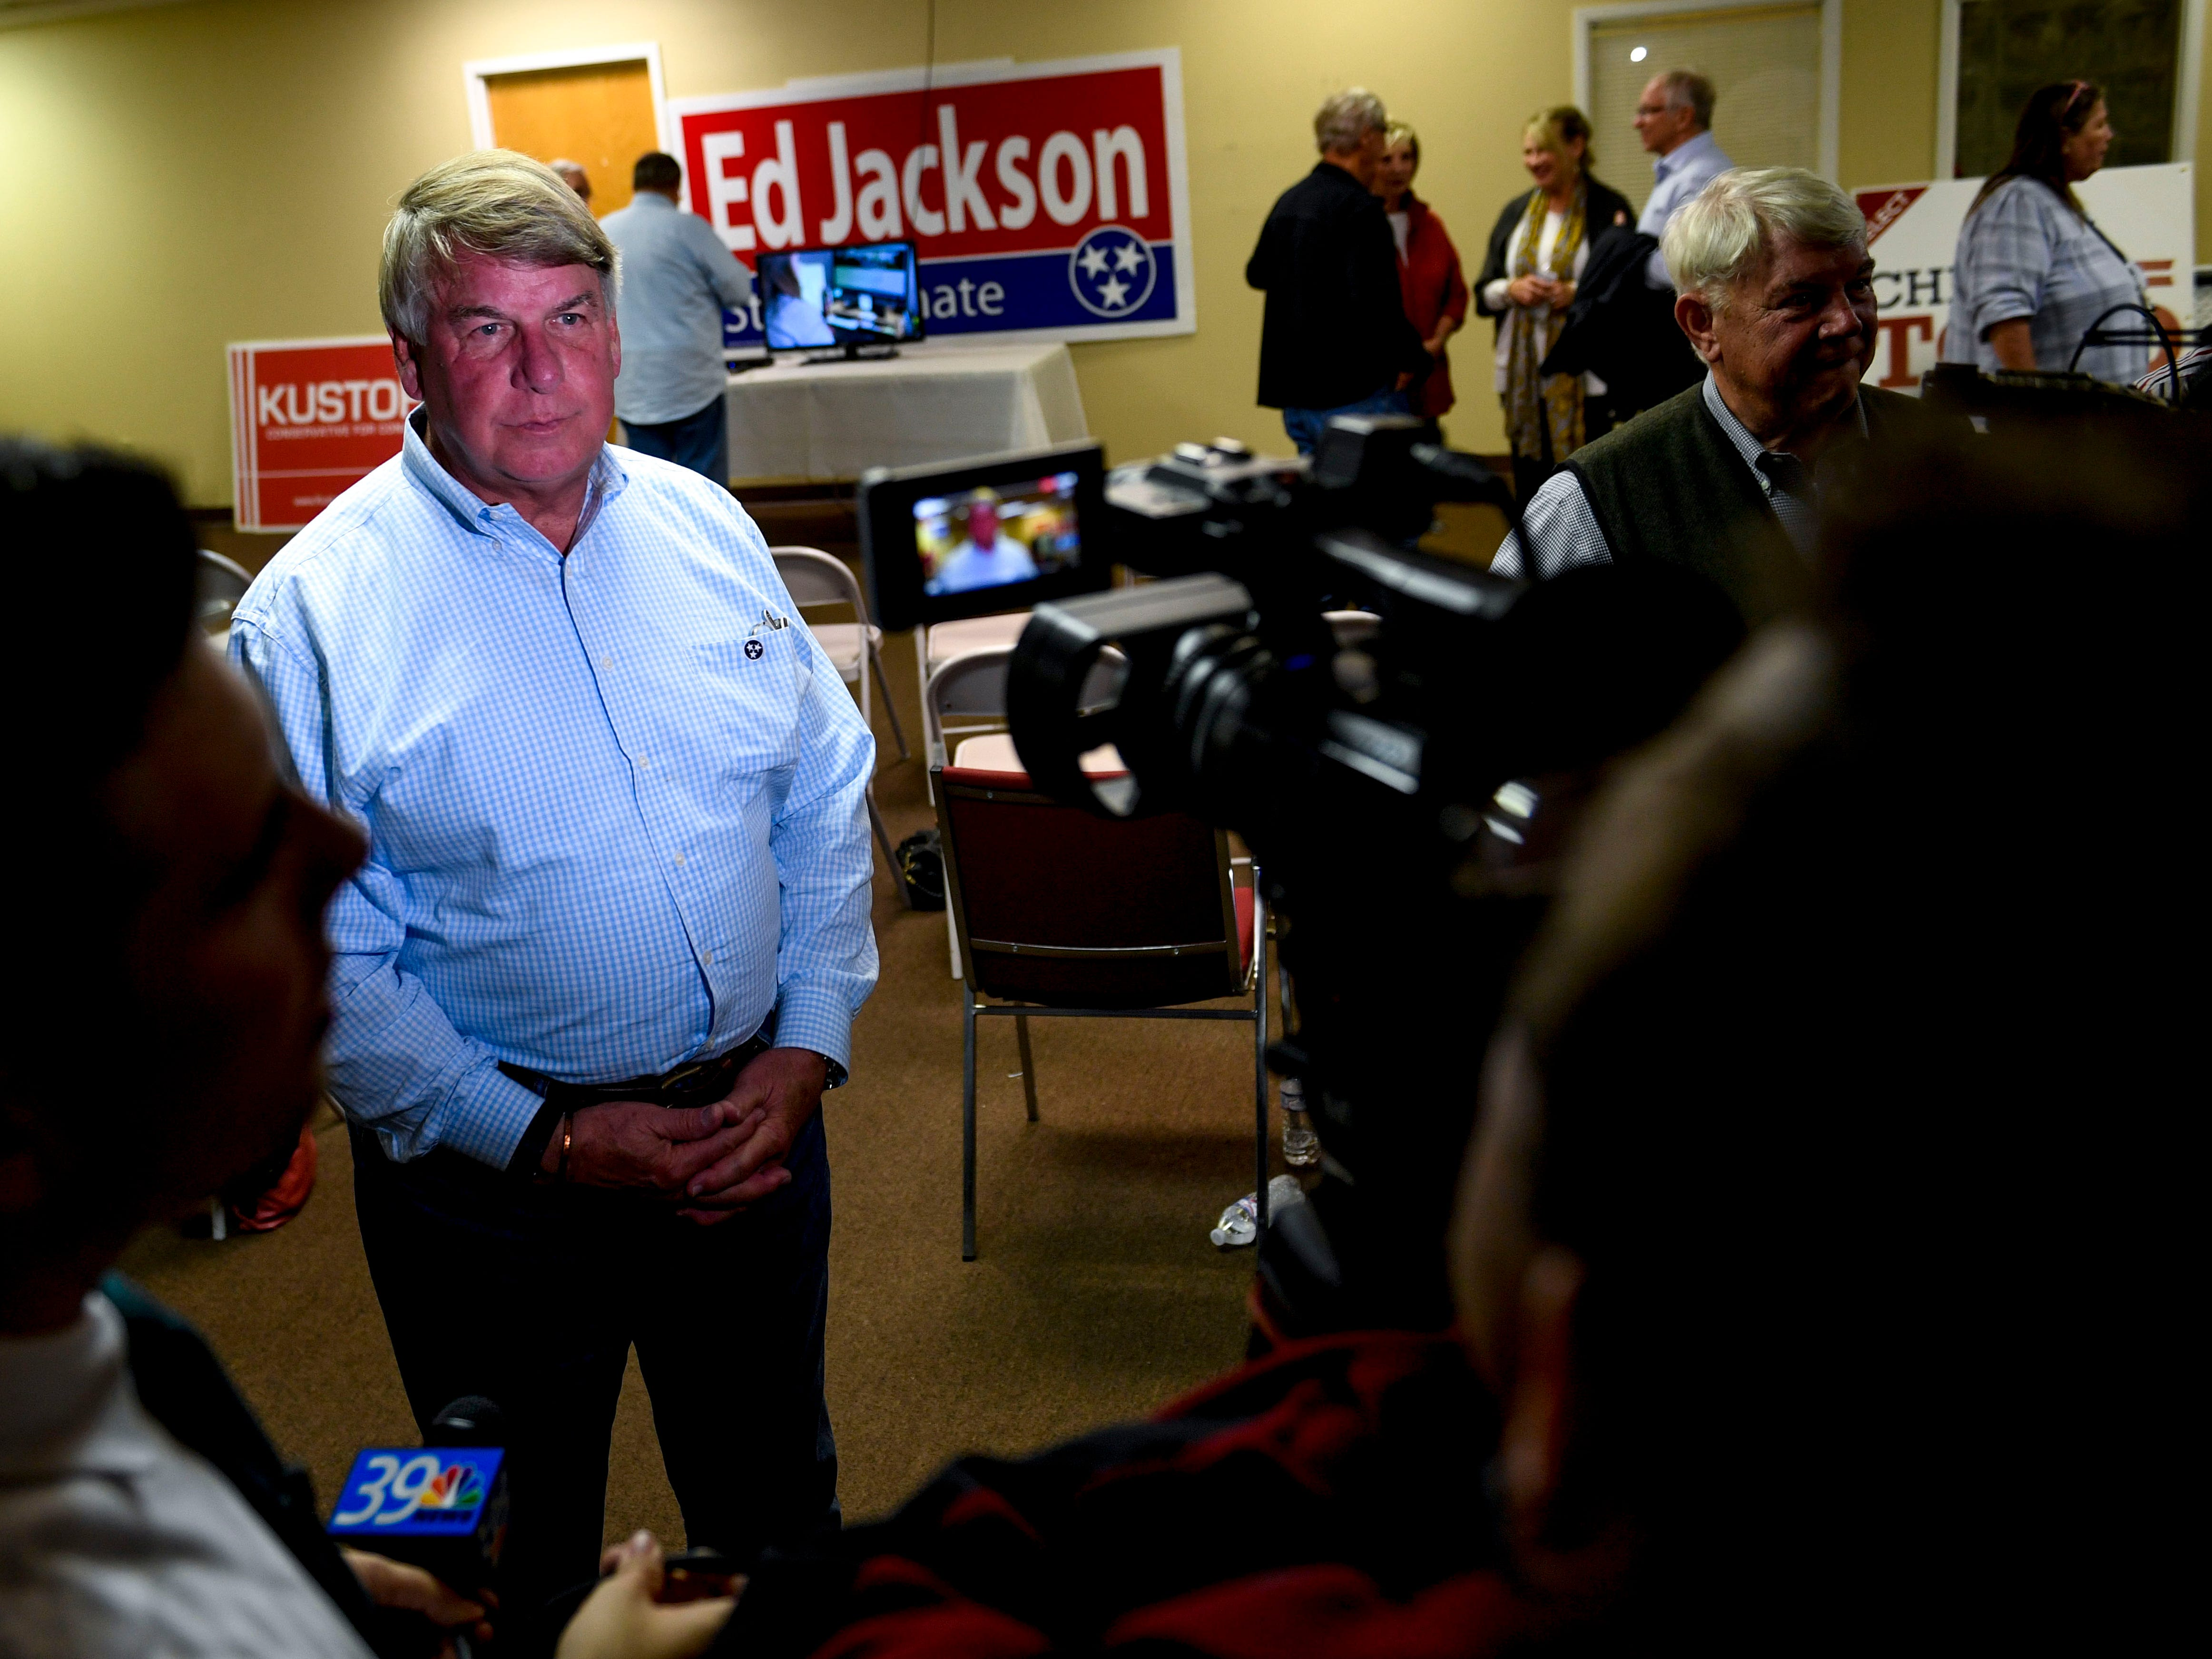 State Senator Ed Jackson, District 27, answers questions from local media during an election night watch party at Madison County Republican Headquarters in Jackson, Tenn., on Tuesday, Nov. 6, 2018.